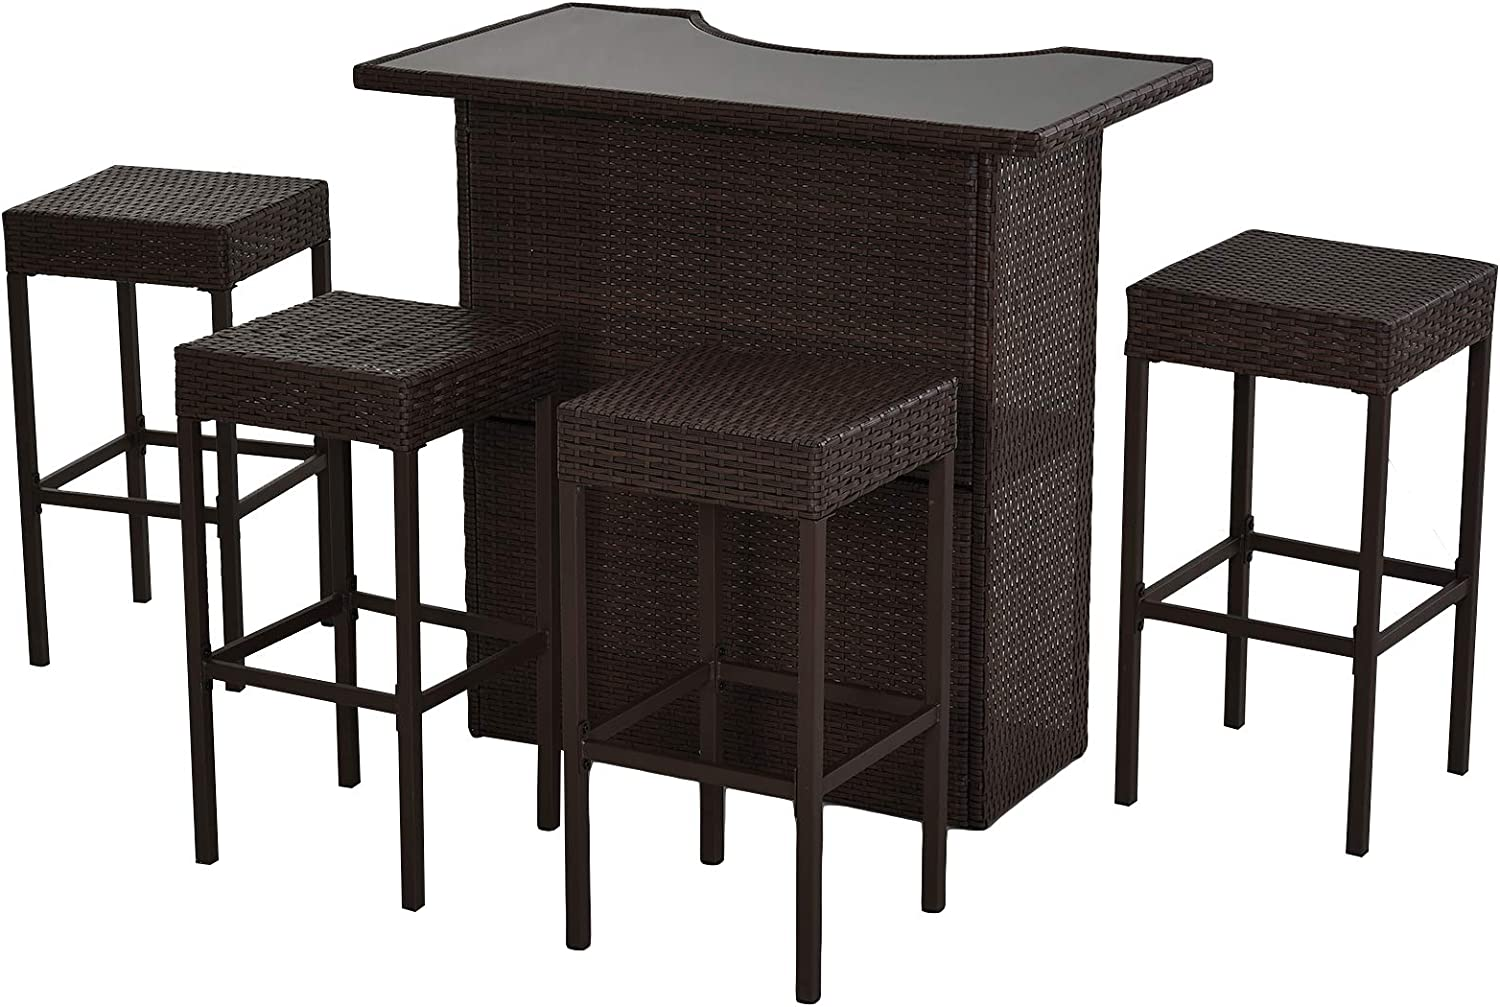 Outsunny 5 Piece Outdoor Patio Wicker Bar Set Outside Rattan Table Chair Stool Set With Glass Top And Shelf Garden Outdoor